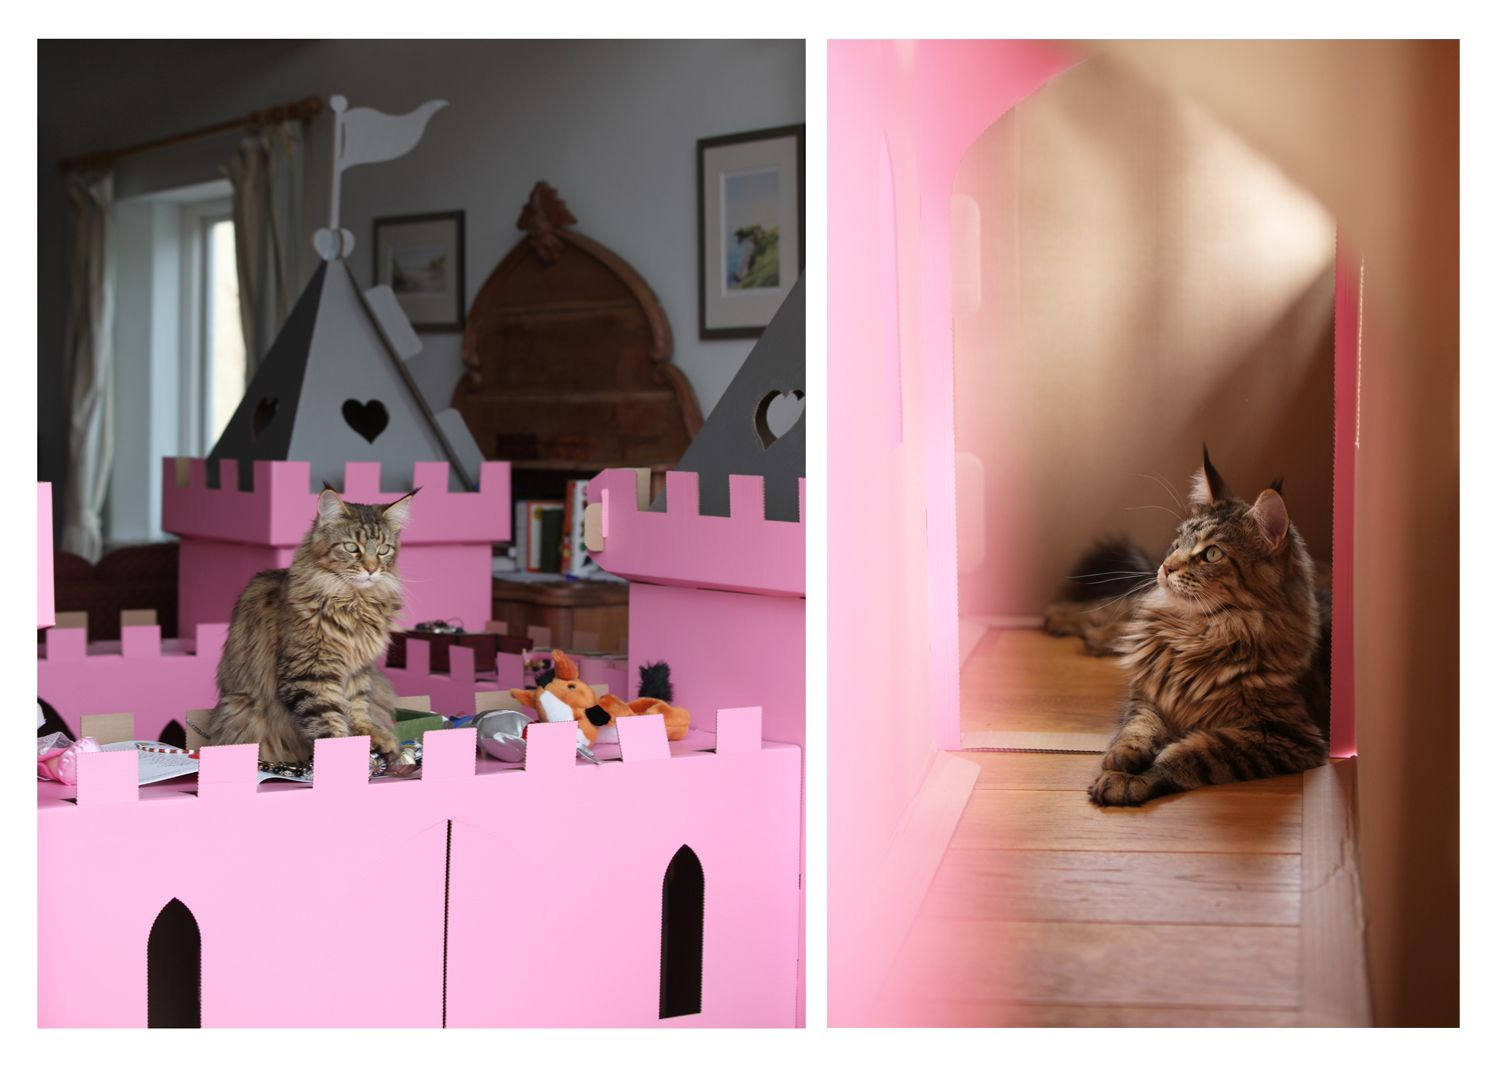 Thula Playing in the pink castle http://irisgracepainting.com/